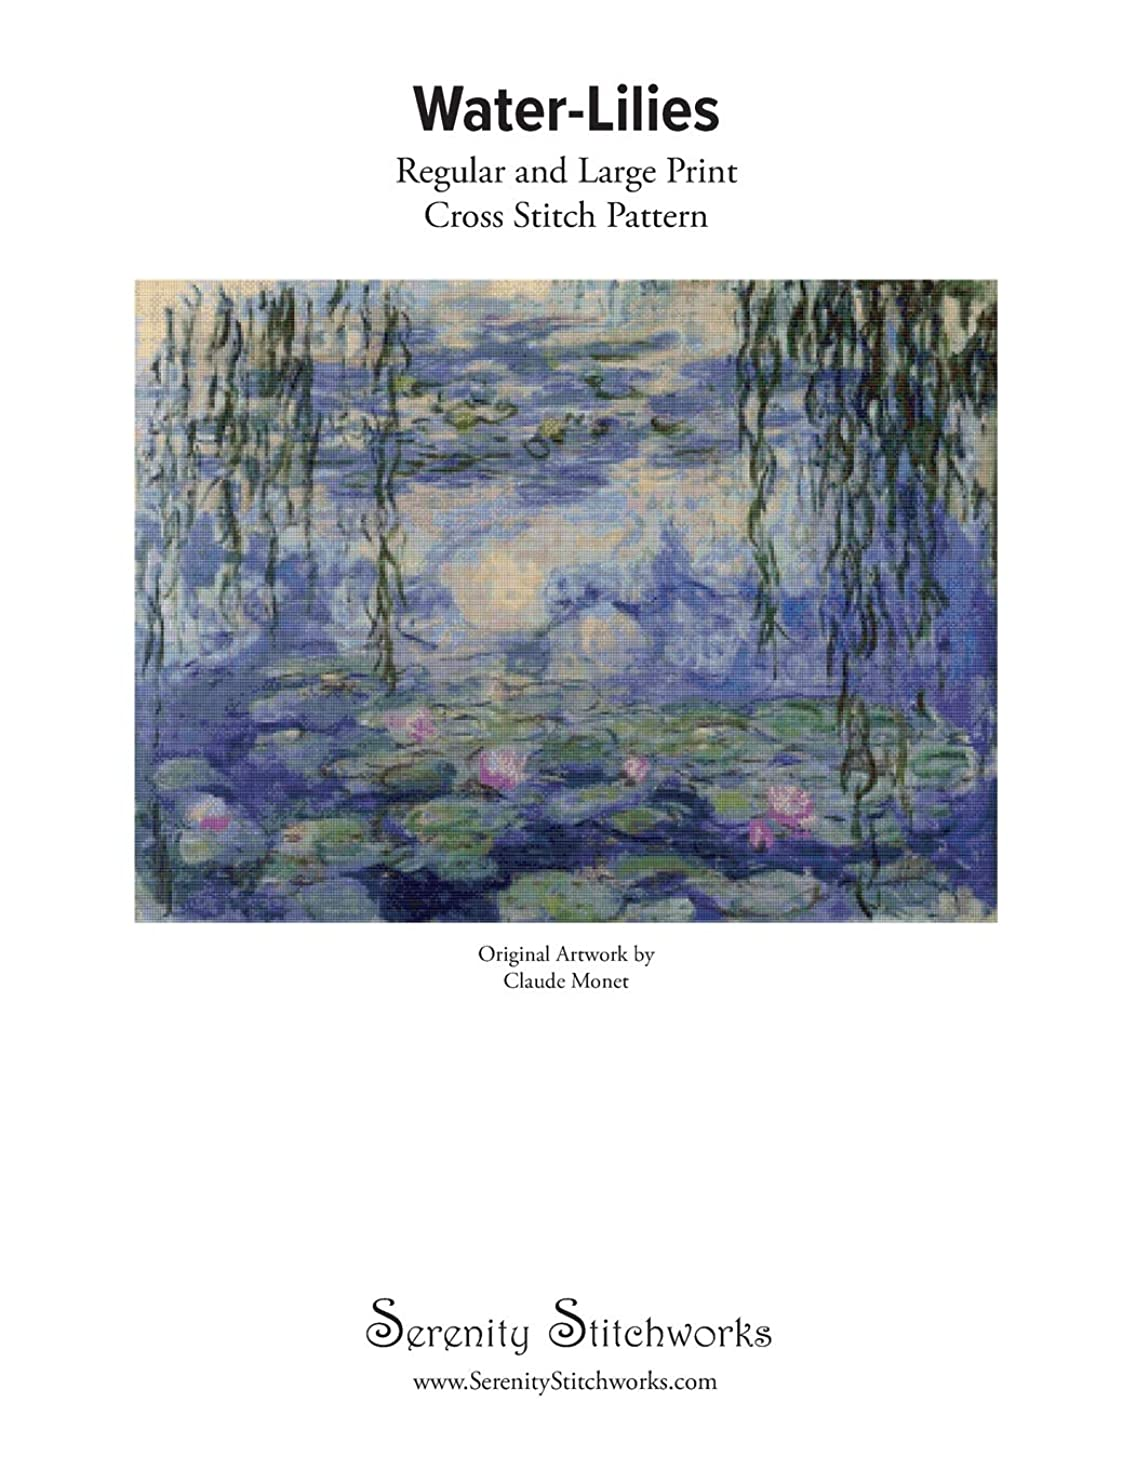 蜜急襲唯一Water-Lilies Cross Stitch Pattern - Claude Monet: Regular and Large Print Cross Stitch Pattern